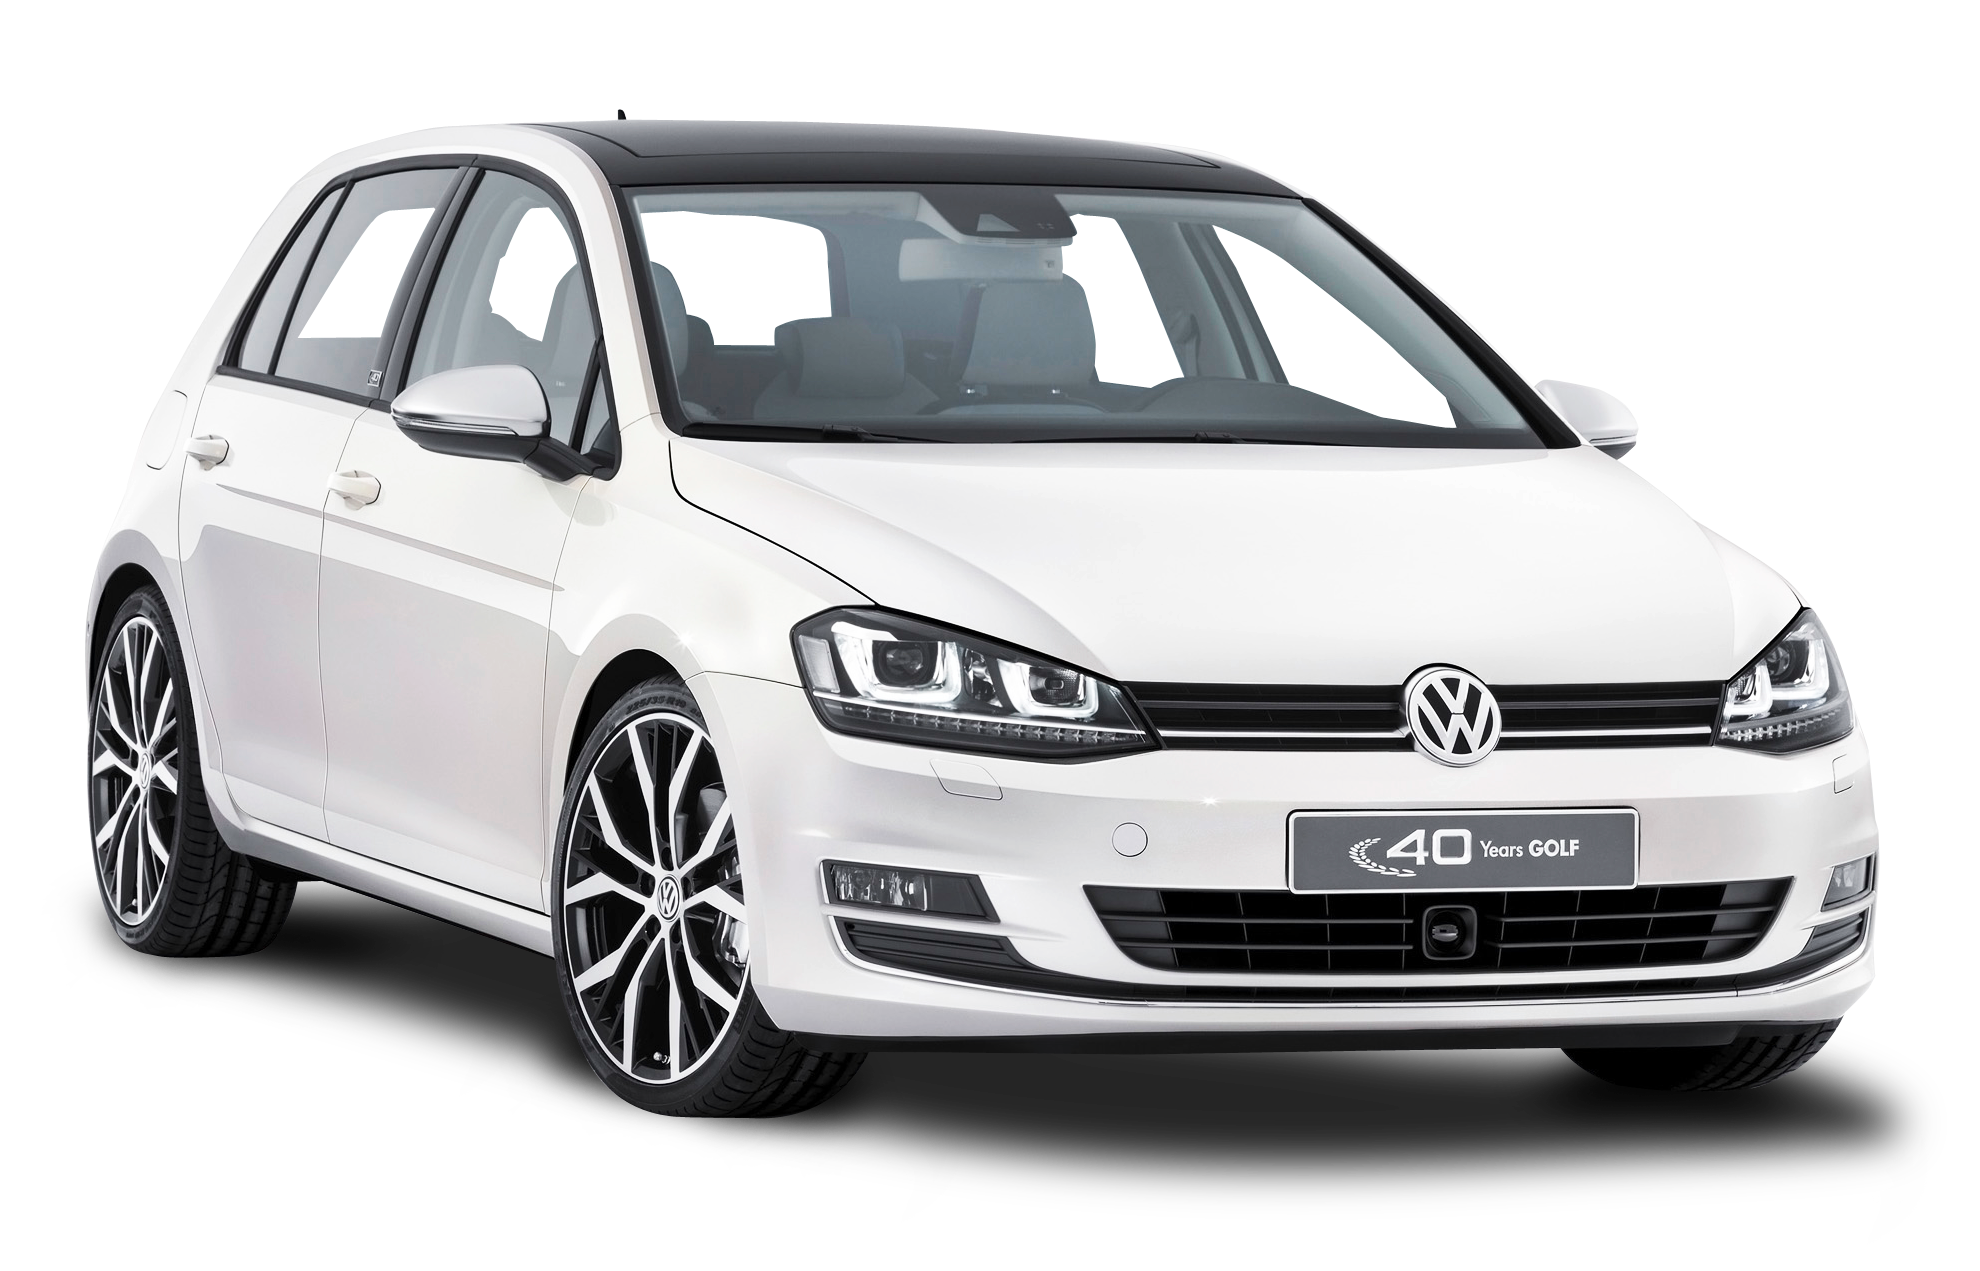 Golf car clipart graphic library download White Volkswagen Golf Car PNG Image - PurePNG | Free transparent CC0 ... graphic library download